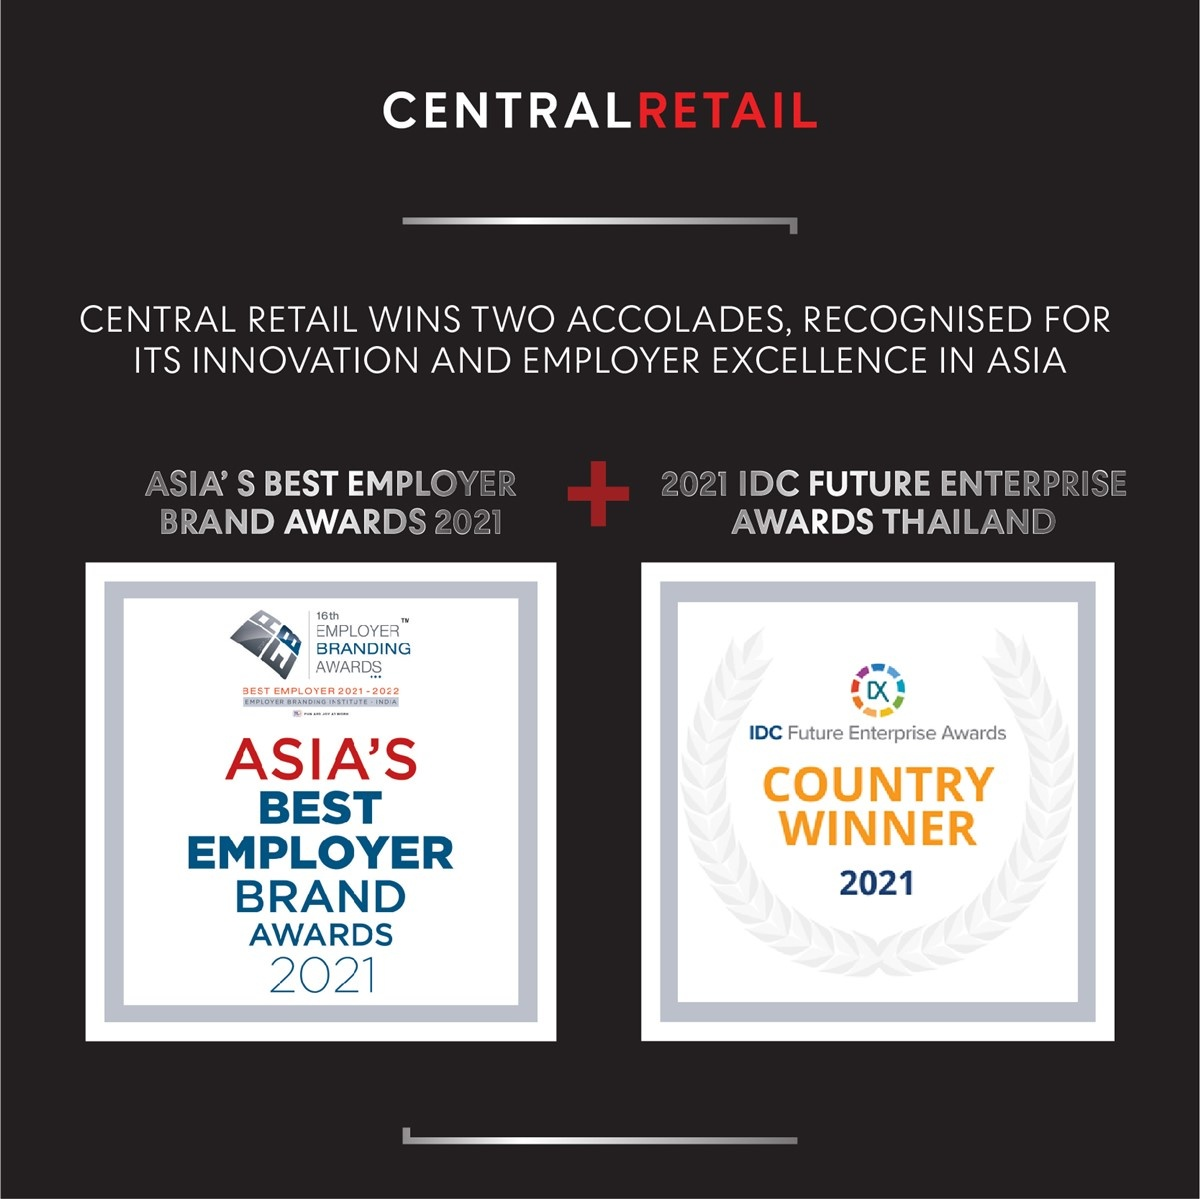 Central Retail Wins Two Accolades, Recognised for its Innovation and Employer Excellence in Asia